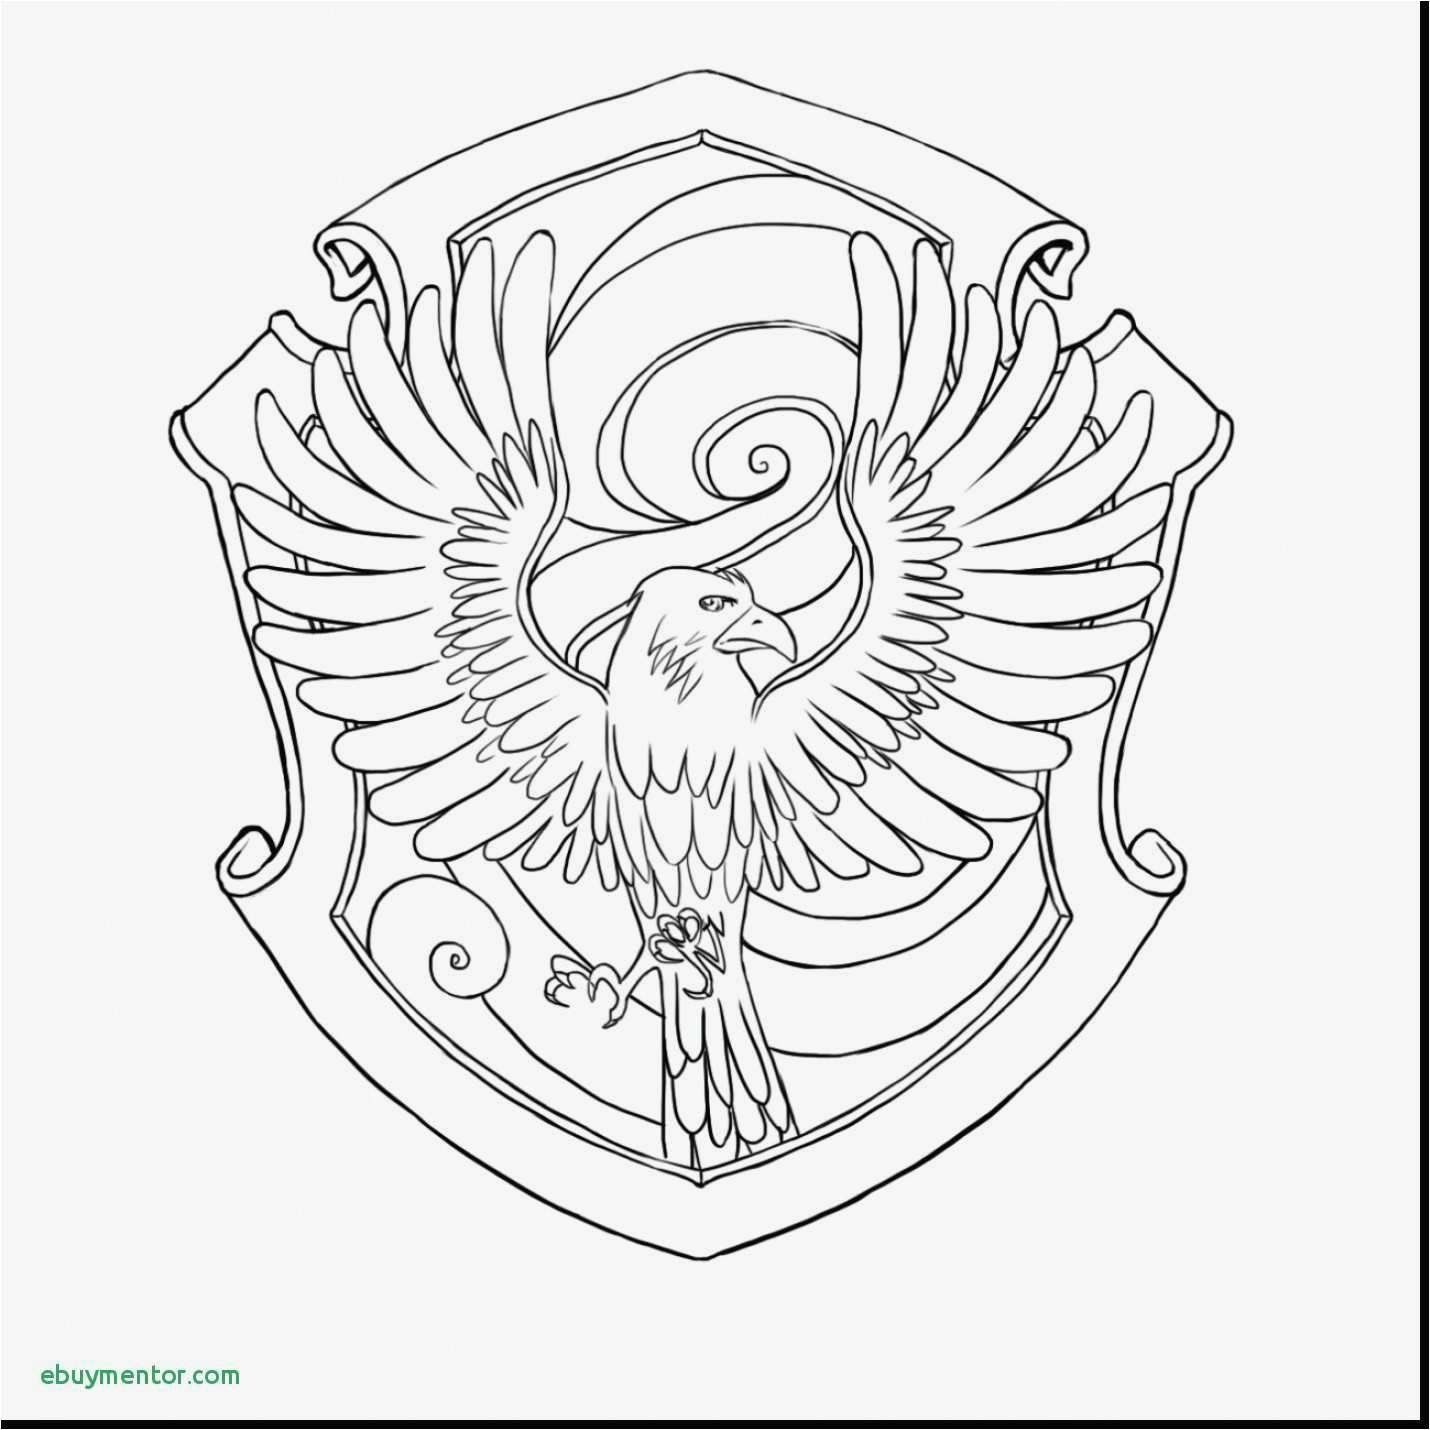 Harry Potter Coloring Pages New Fresh Printable Coloring Pages Harry Potter Coloring Fresh Harry Pages Potter Printable In 2020 Harry Potter Coloring Pages Harry Potter Colors Harry Potter Coloring Book